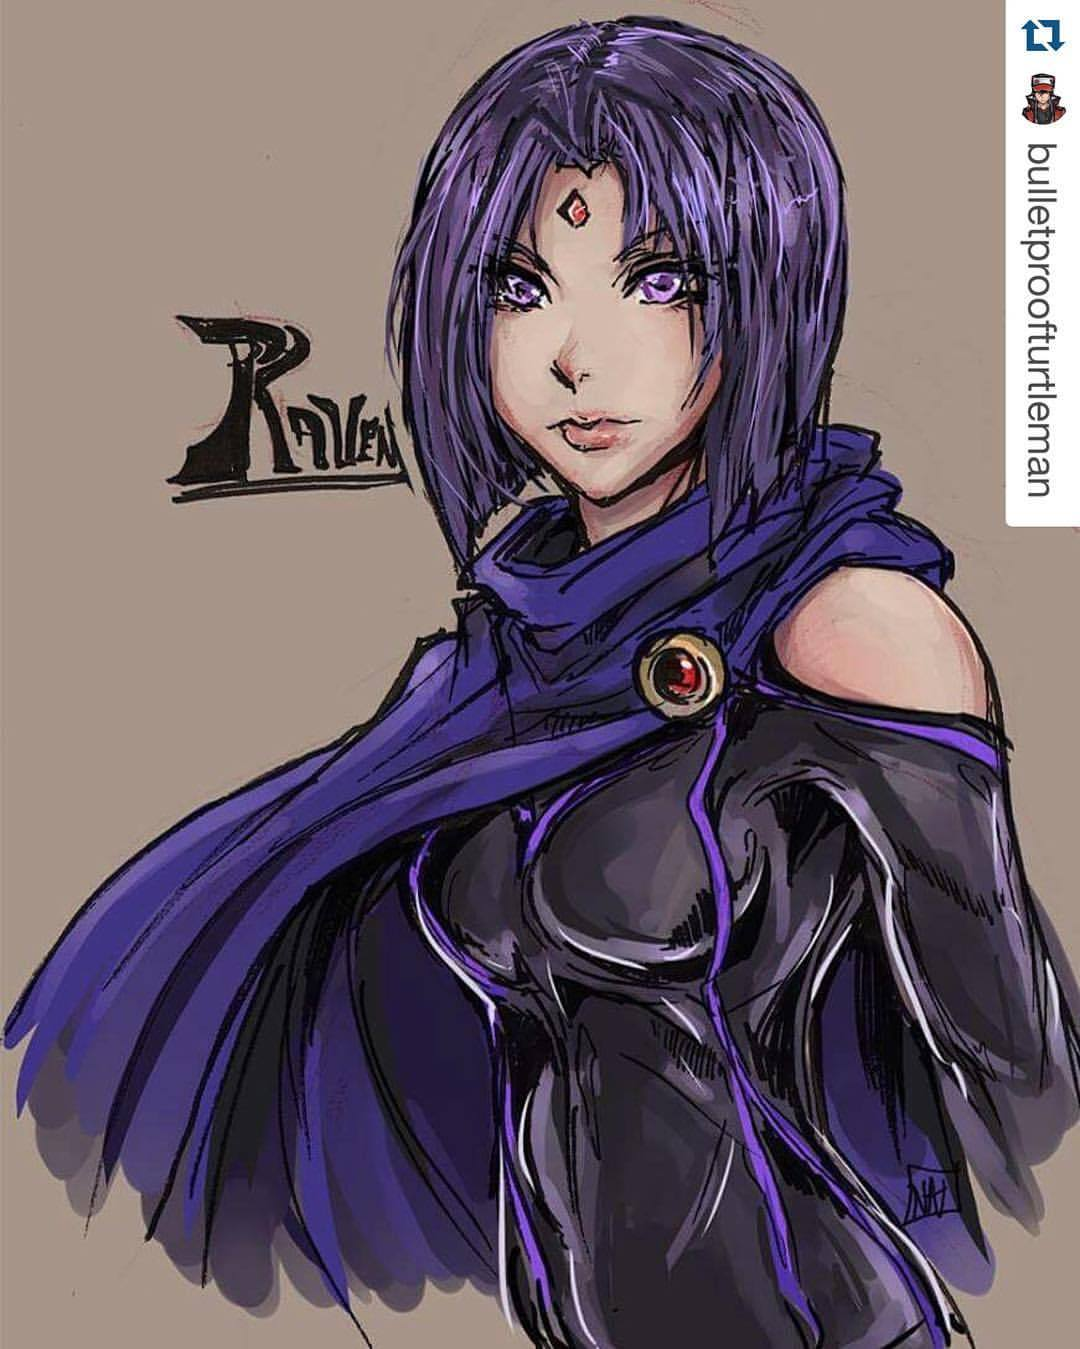 Drawn raven badass #ICYMI: — INBEON #anime @bulletproofturtleman